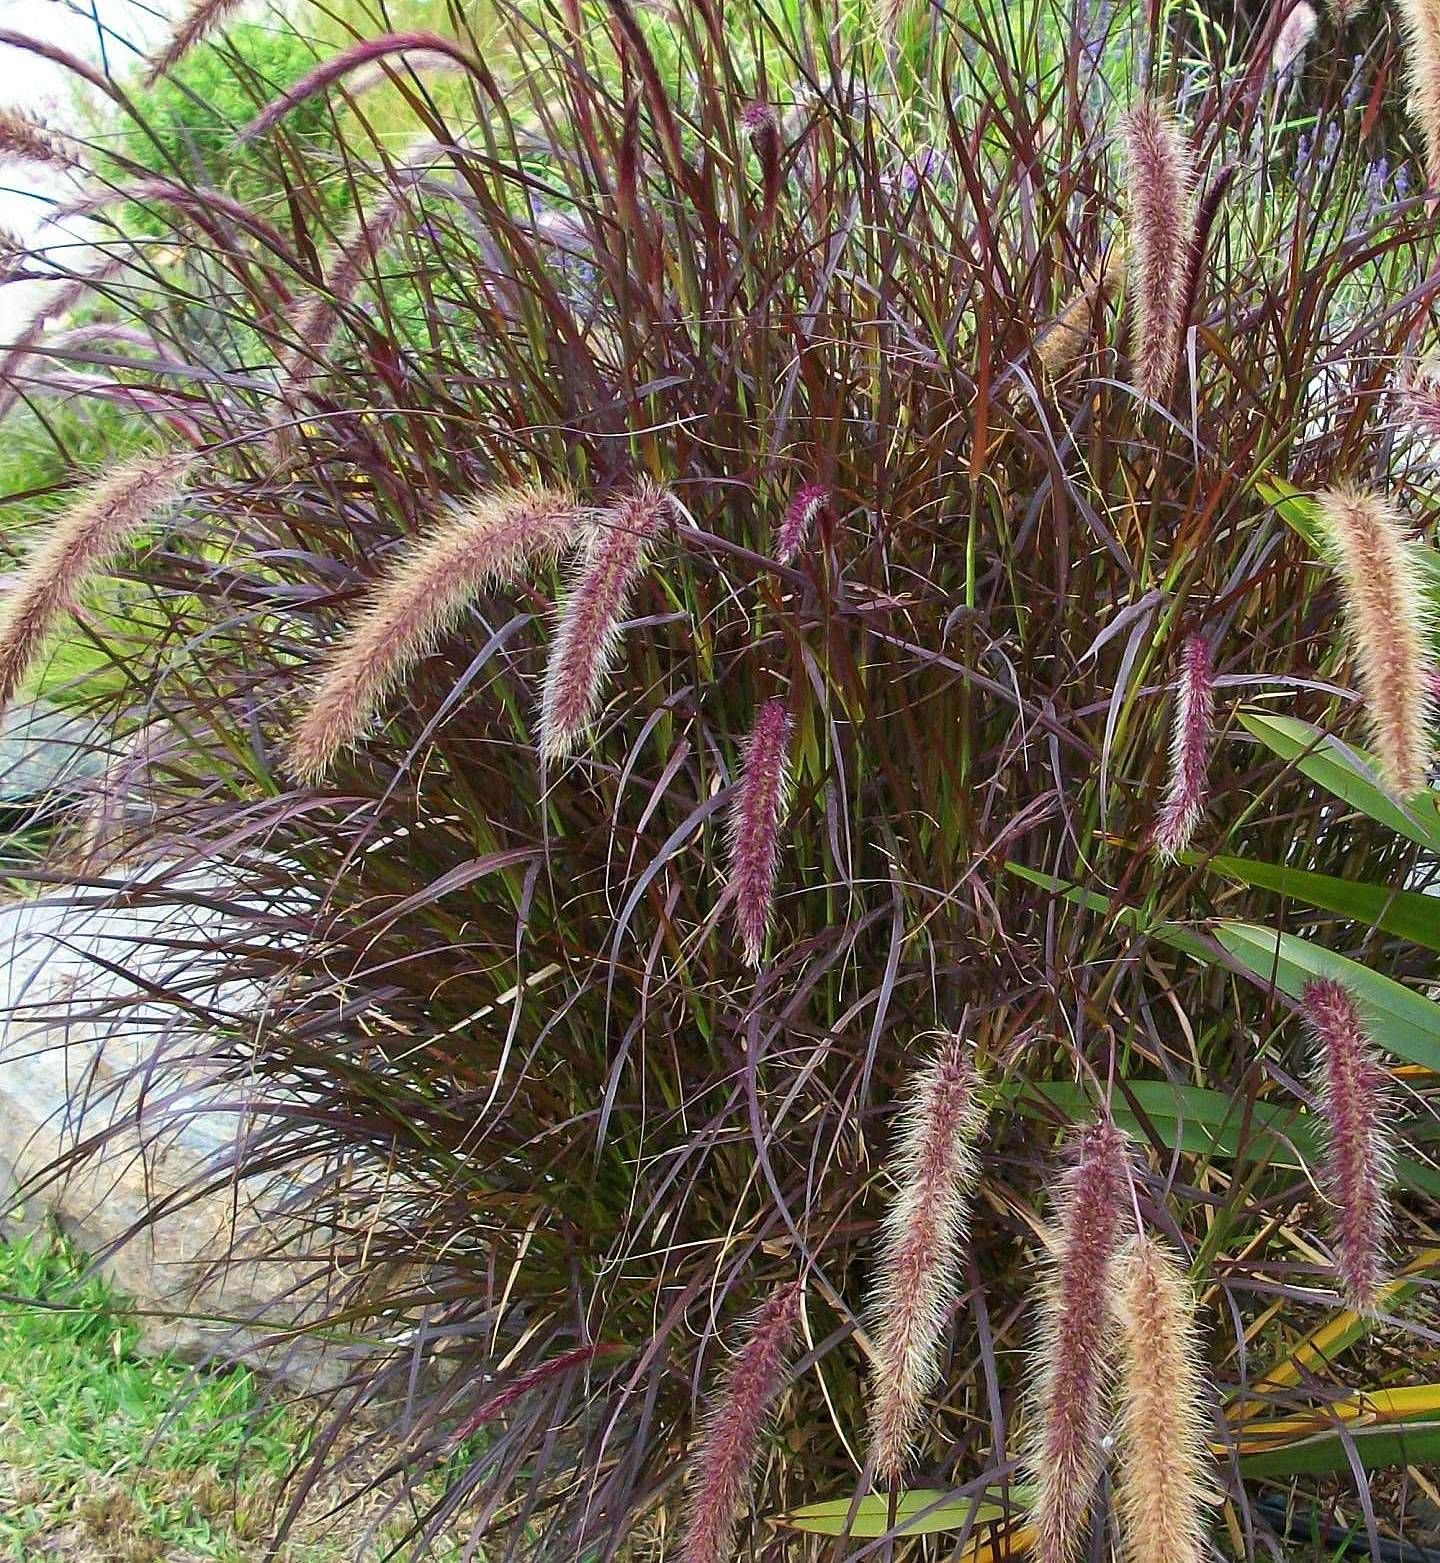 The 12 best ornamental grasses to grow in your garden fountain if you dont want to deal with ornamental grass maintenance you can plant purple fountain grass it is very pretty but not hardy here it would die each workwithnaturefo